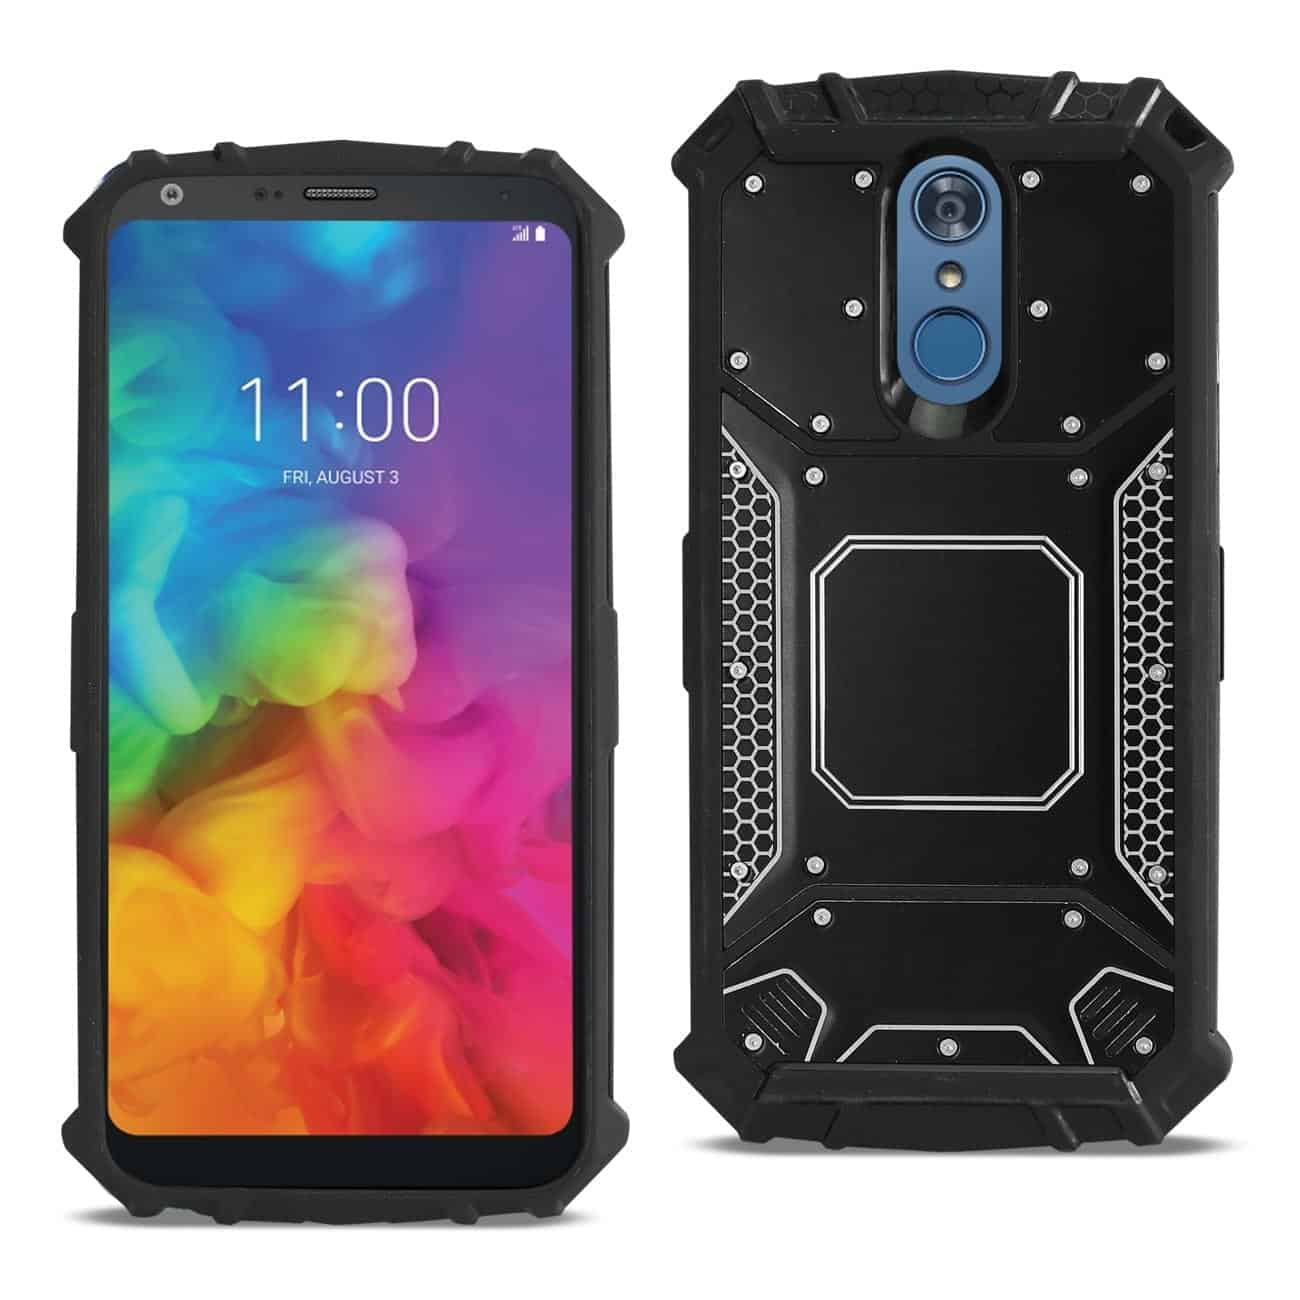 LG Q7 Plus Metallic Front Cover Case In Black